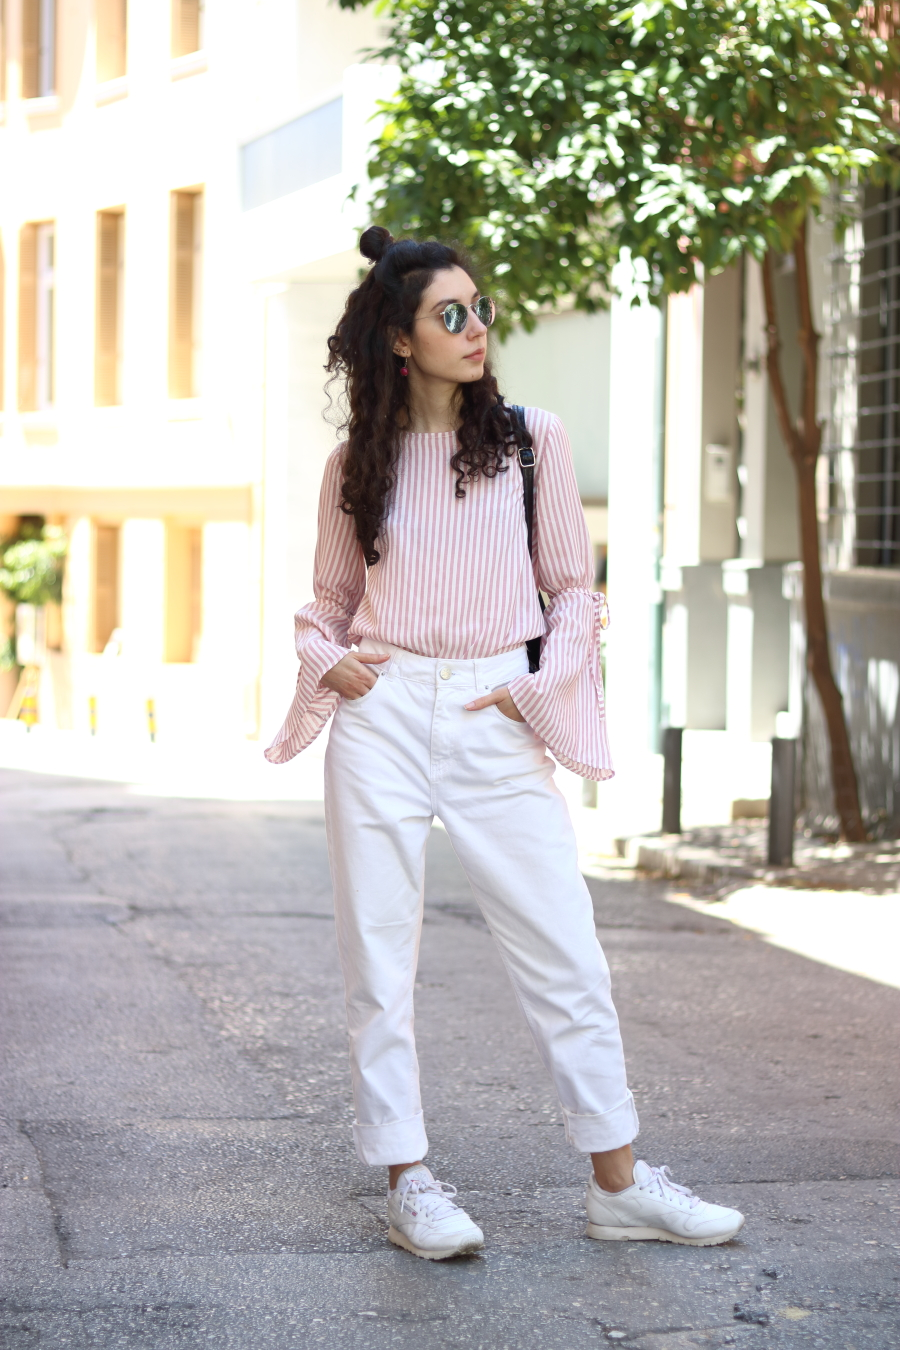 Pink Flared Sleeves Blouse - White BDG Jeans - White Trainers - Ray Ban Metal Rounds- www.theblushfulhippocrene.blogspot.com